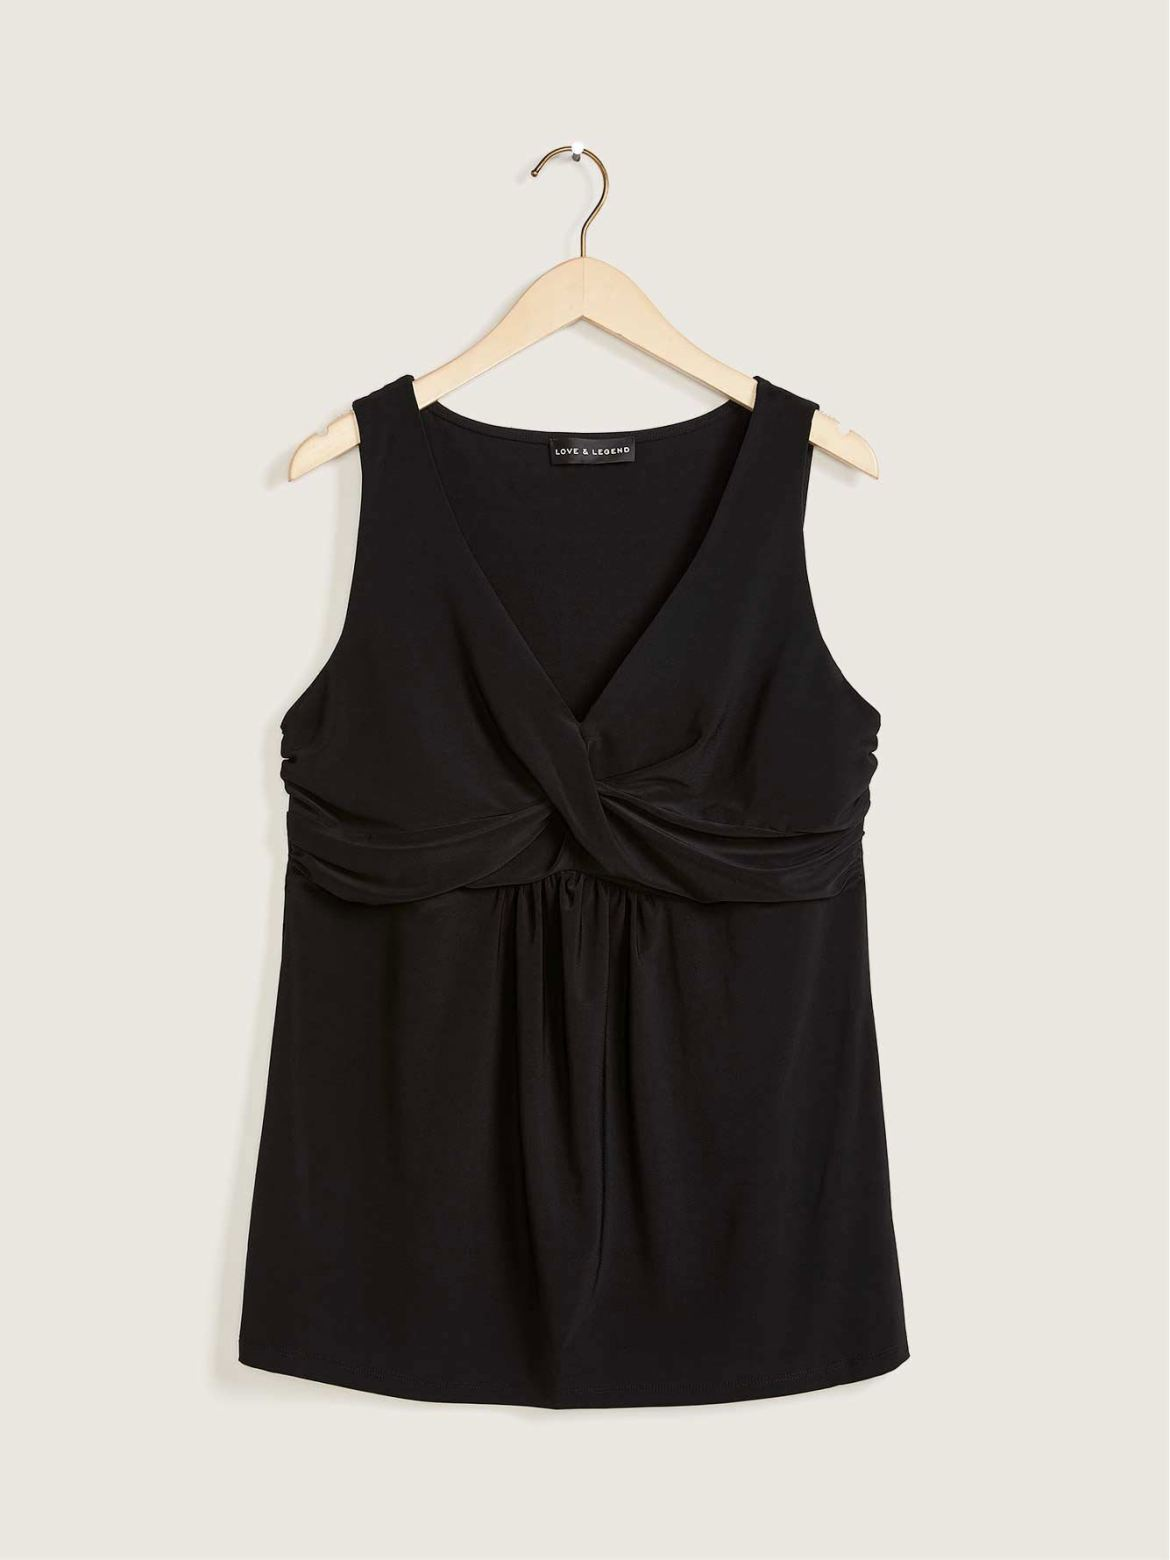 Sleeveless Top with Twist Detail - Love & Legend